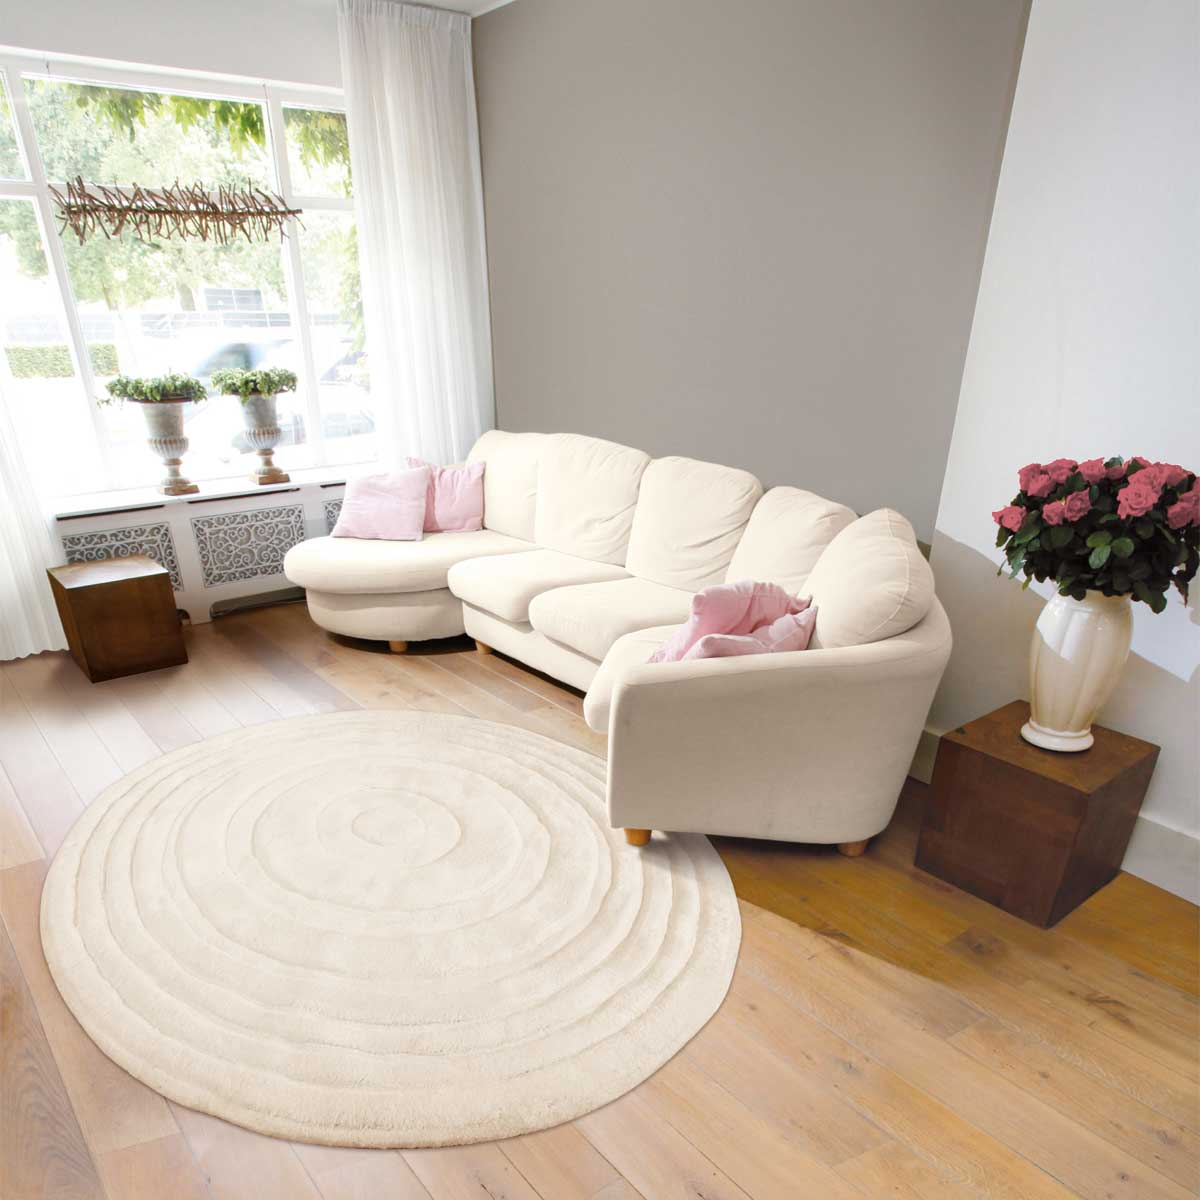 carrelage design tapis rond salon moderne design pour carrelage de sol et rev tement de tapis. Black Bedroom Furniture Sets. Home Design Ideas